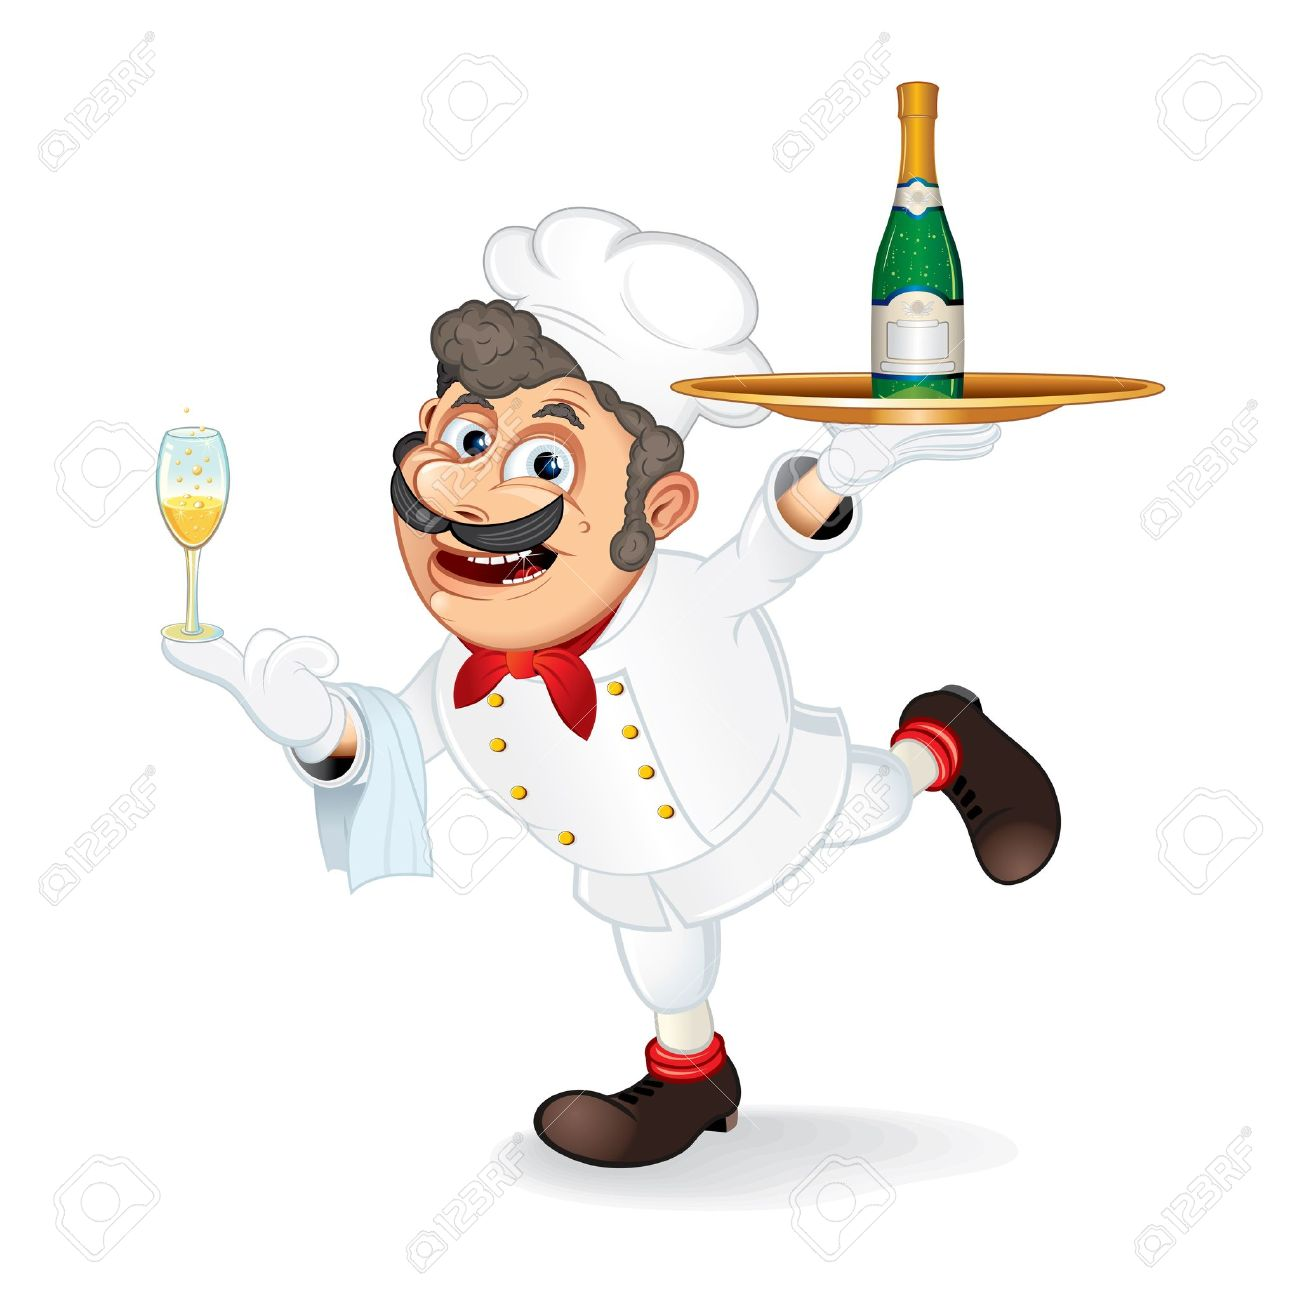 Chef Cook With Tray And Bootle Of Champagne, Isolated Vector Cartoon  Illustration Stock Vector